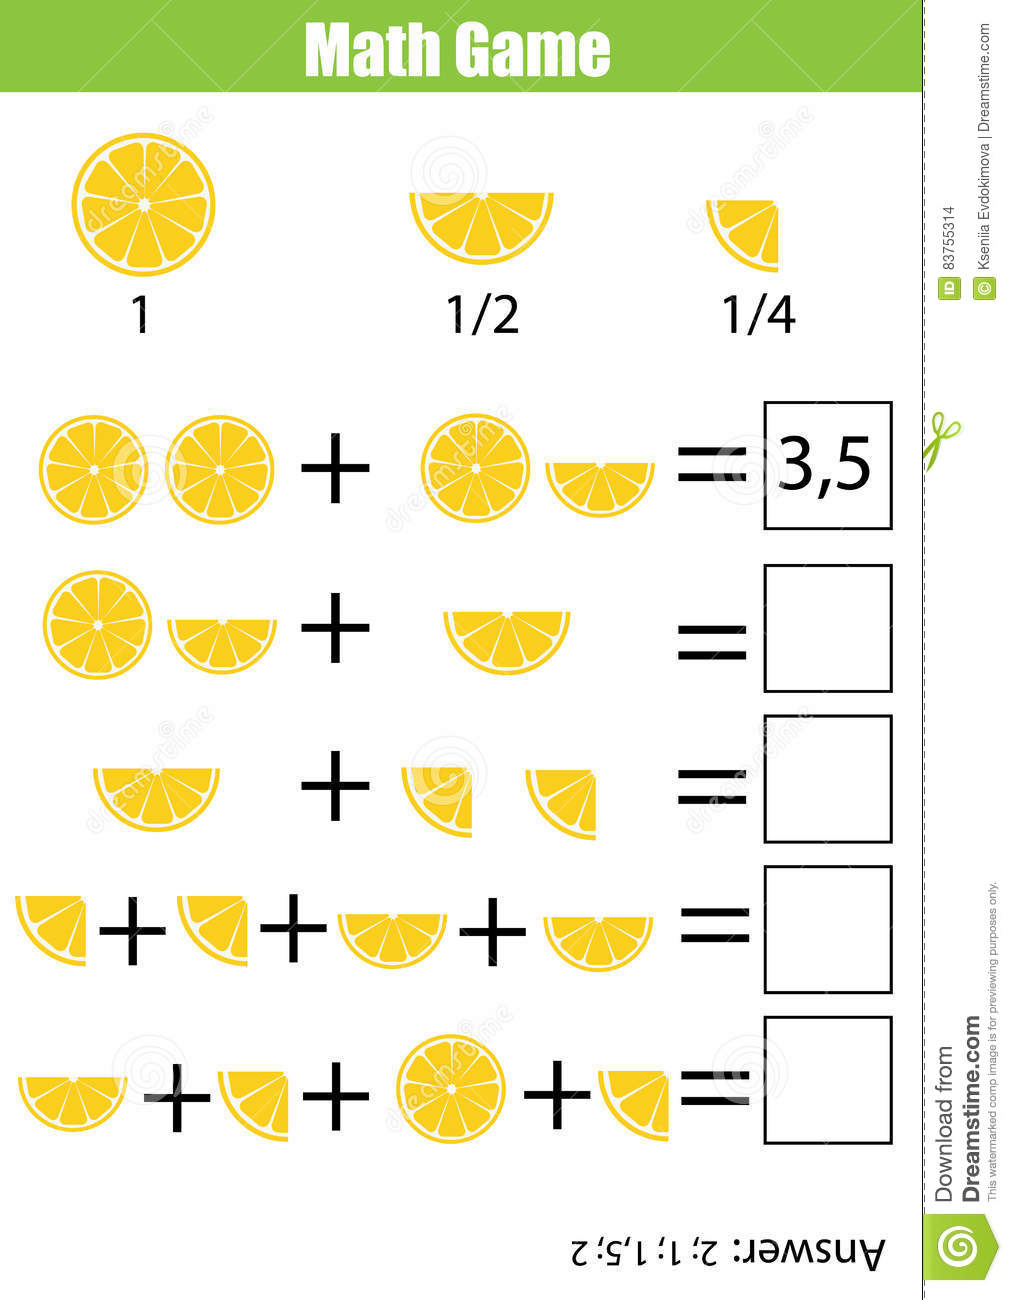 Math Educational Counting Game For Children Addition Worksheet – Counting Quarters Worksheet